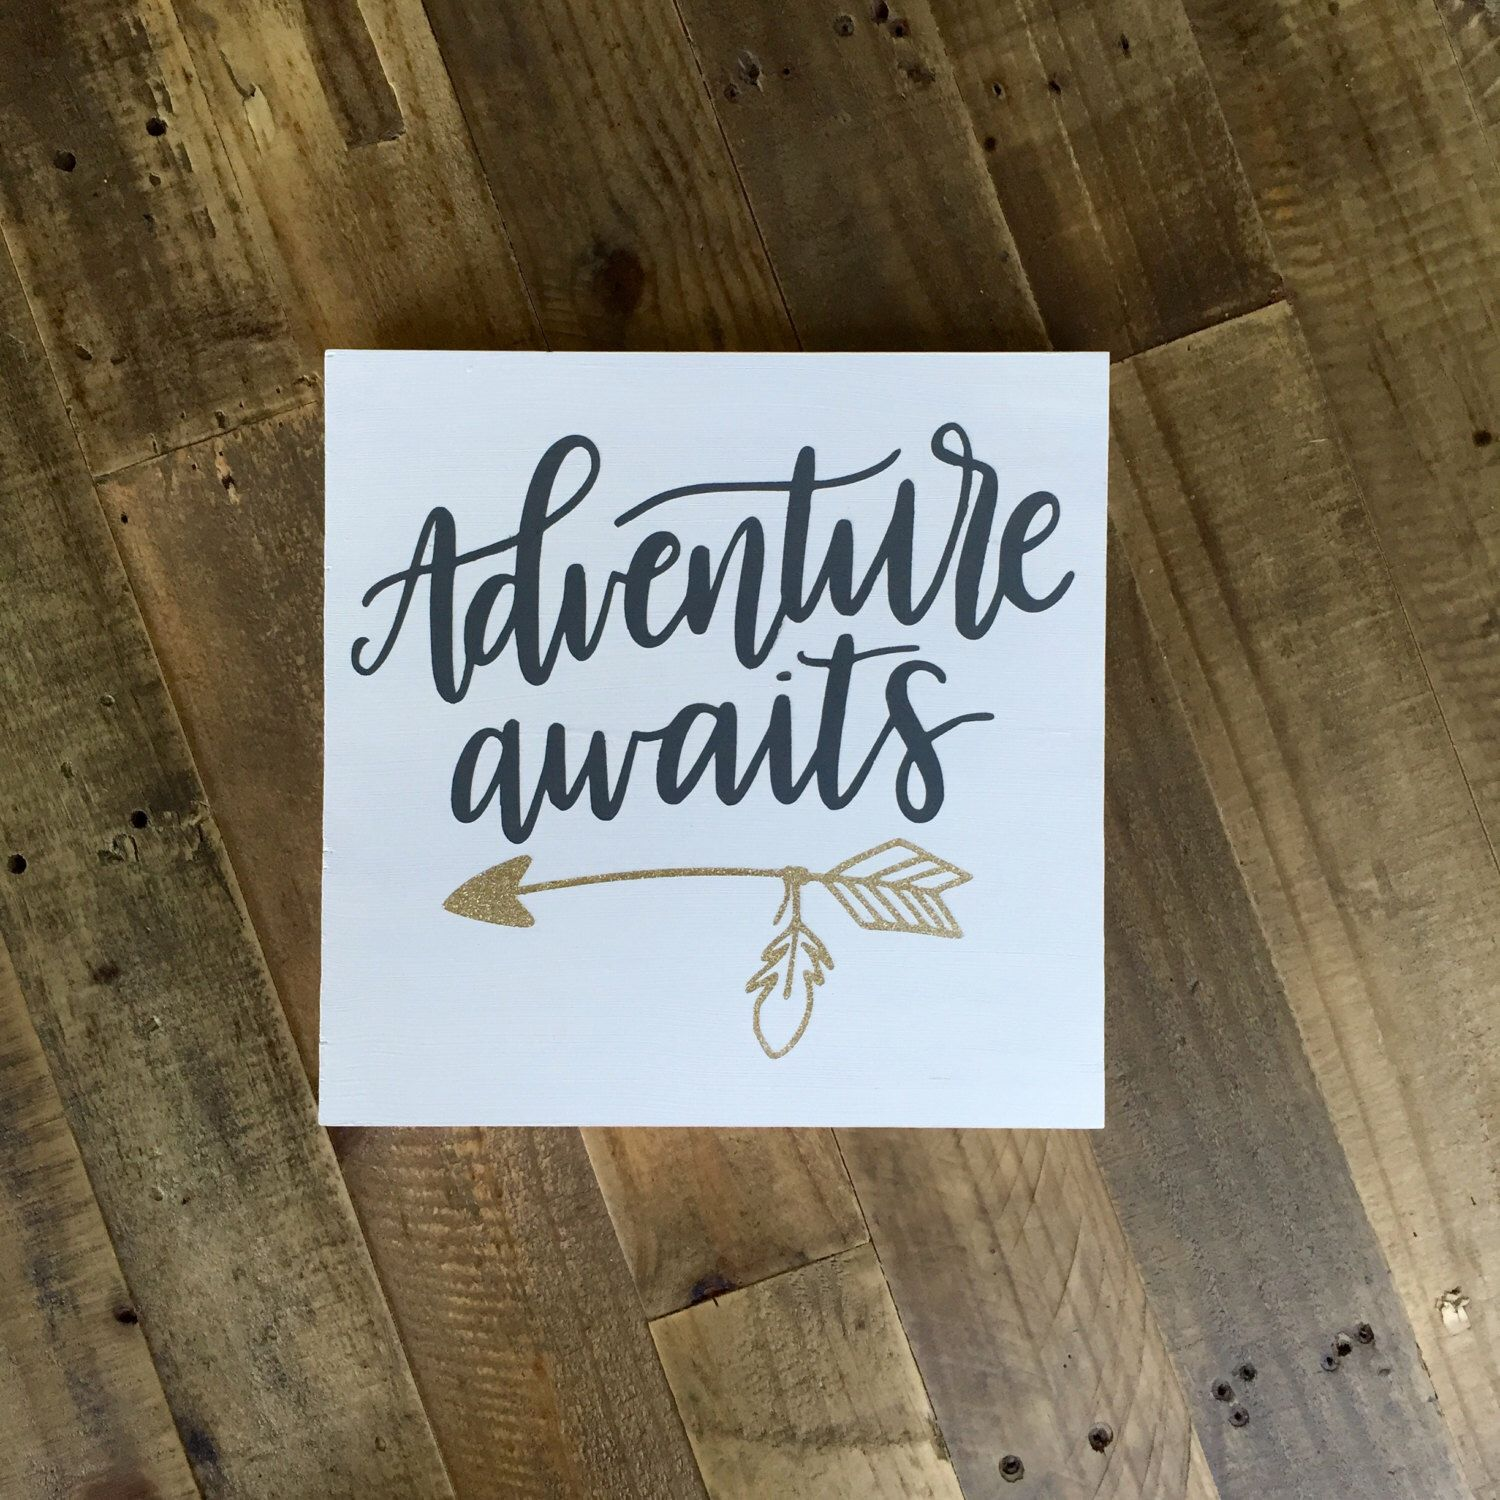 """12x12""""   adventure awaits sign   painted wood sign   wedding sign   baby shower gift   nursery decor   adventure sign   arrow sign by IvyandElmCo on Etsy https://www.etsy.com/listing/459730552/12x12-o-adventure-awaits-sign-o-painted"""